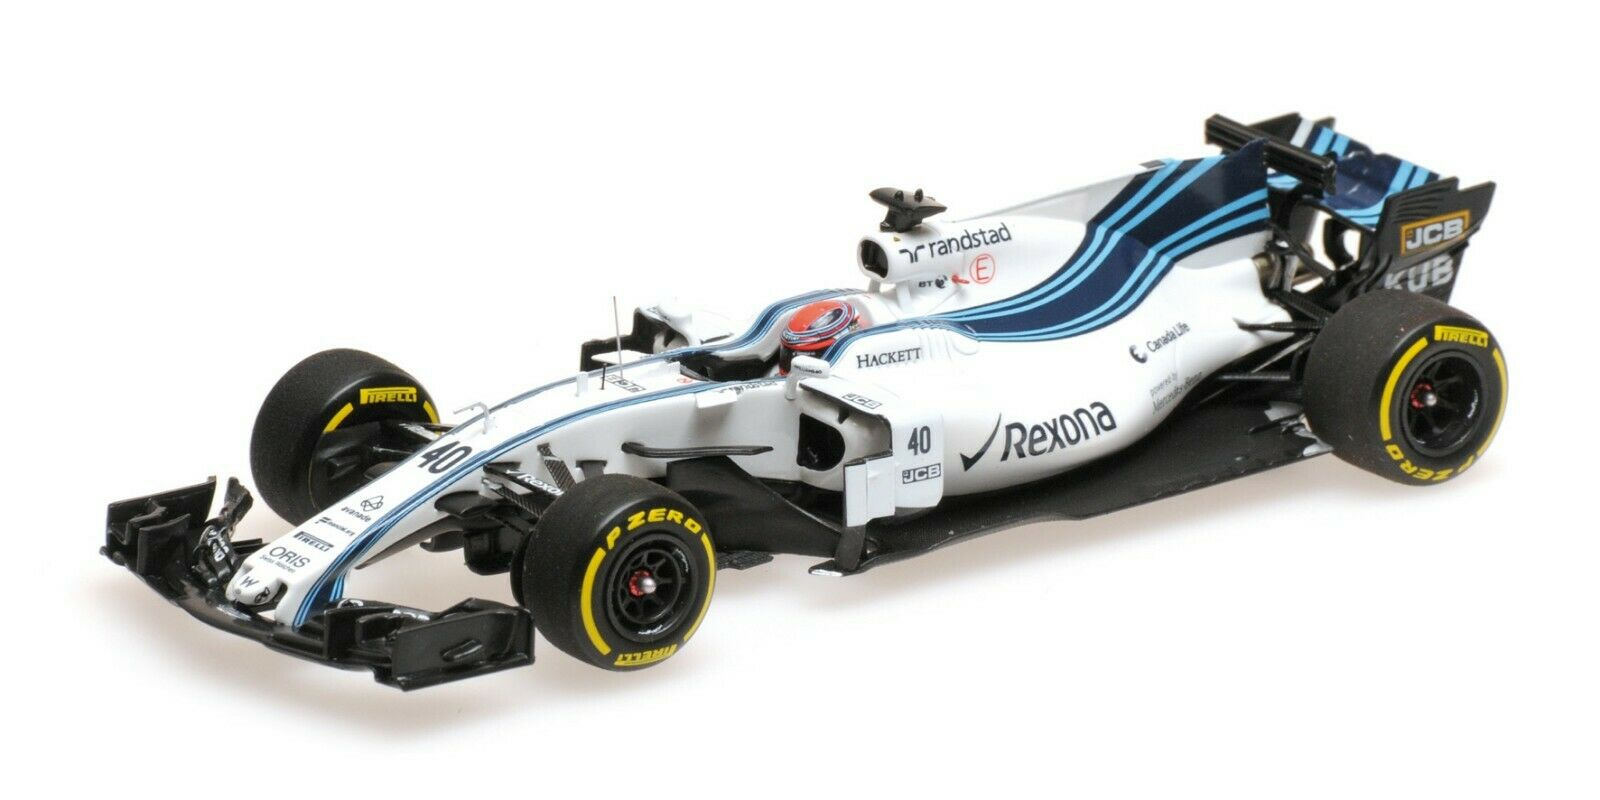 Minichamps F1 Williams Mercedes FW40 Robert Kubica 1 43 Abu Dhabi Test 2017